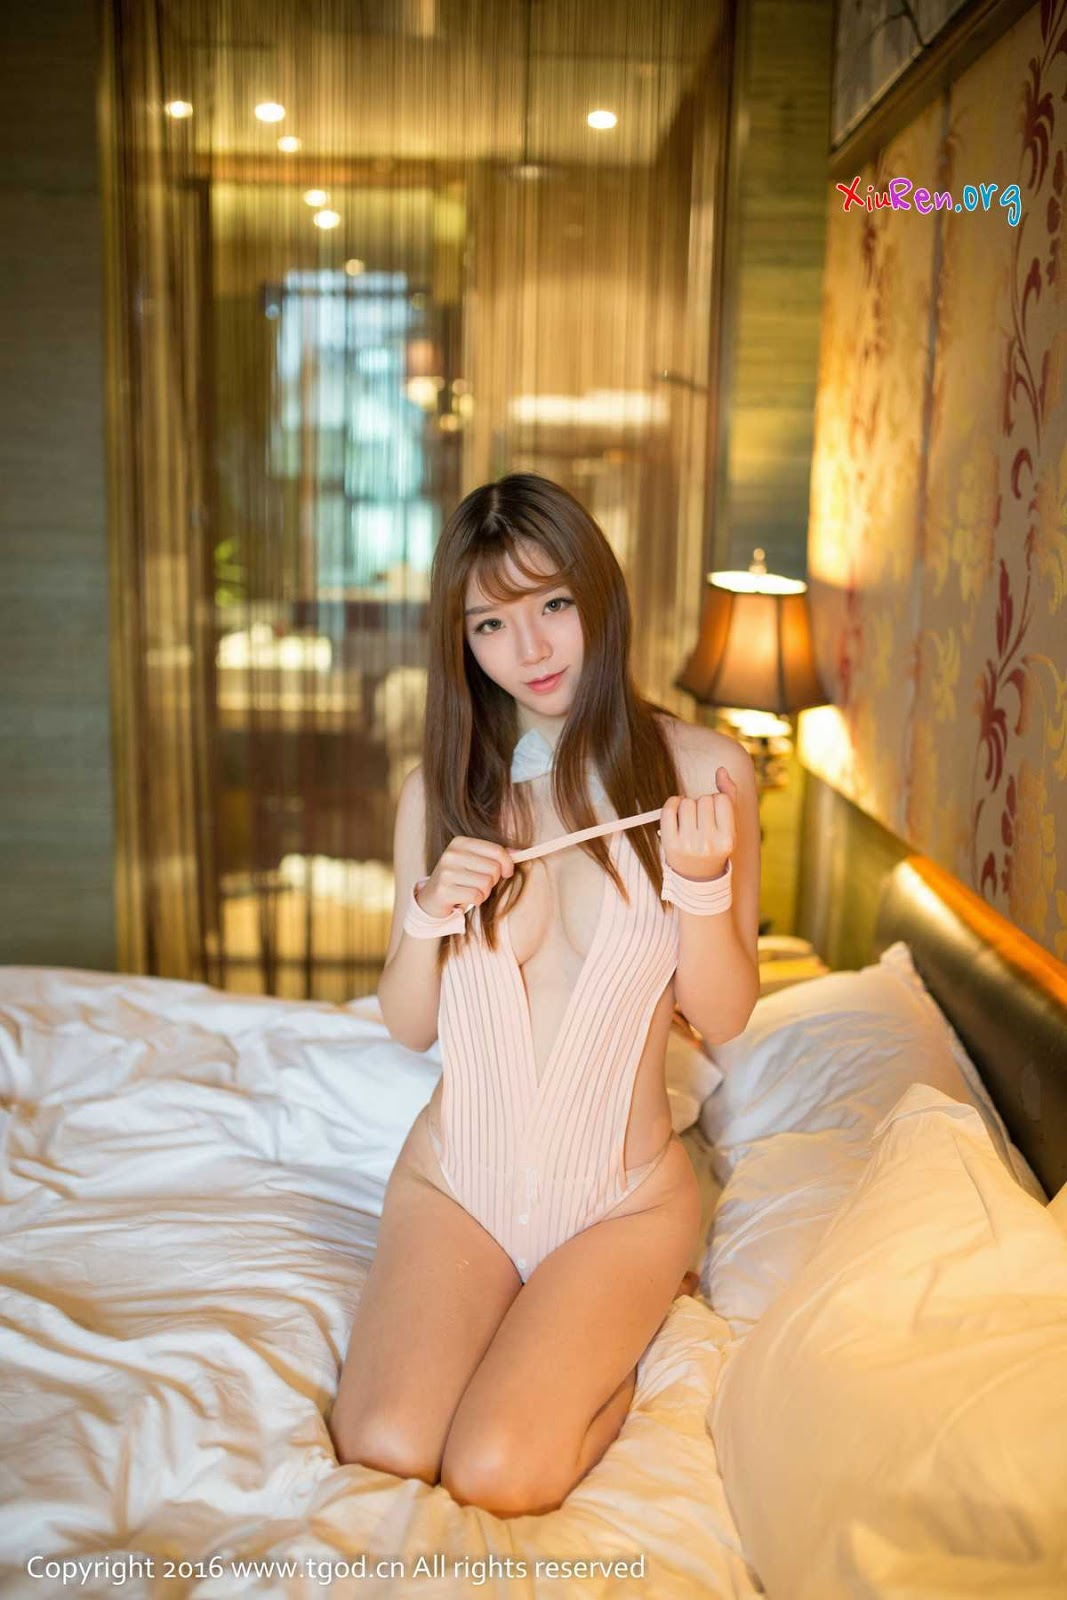 Archived: Tong Yan Chinese Girls Young and Beauty in Caramel Lingerie for TGOD